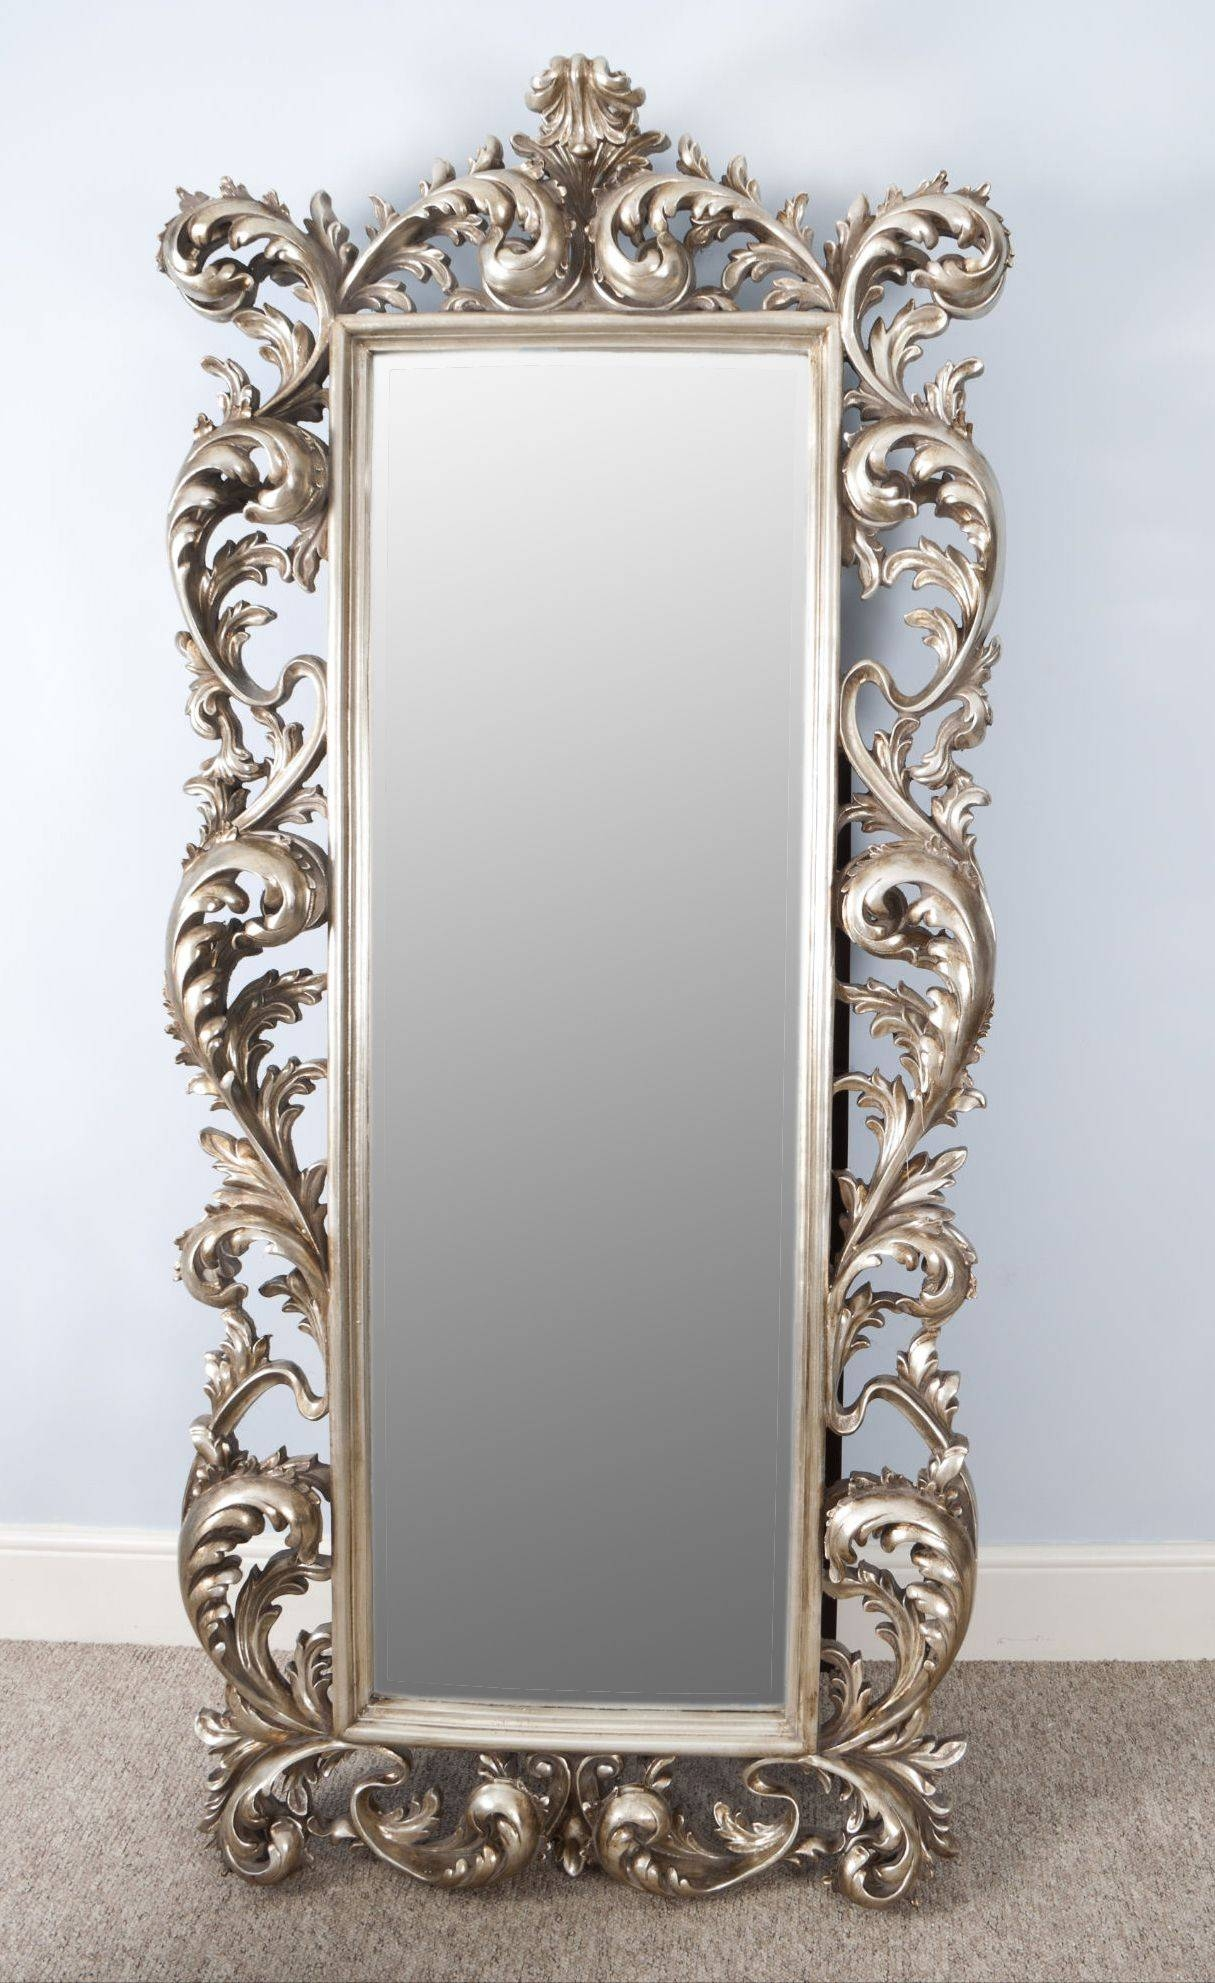 Classic Impression On Antique Wall Mirrors | Vwho inside Old Fashioned Wall Mirrors (Image 6 of 15)